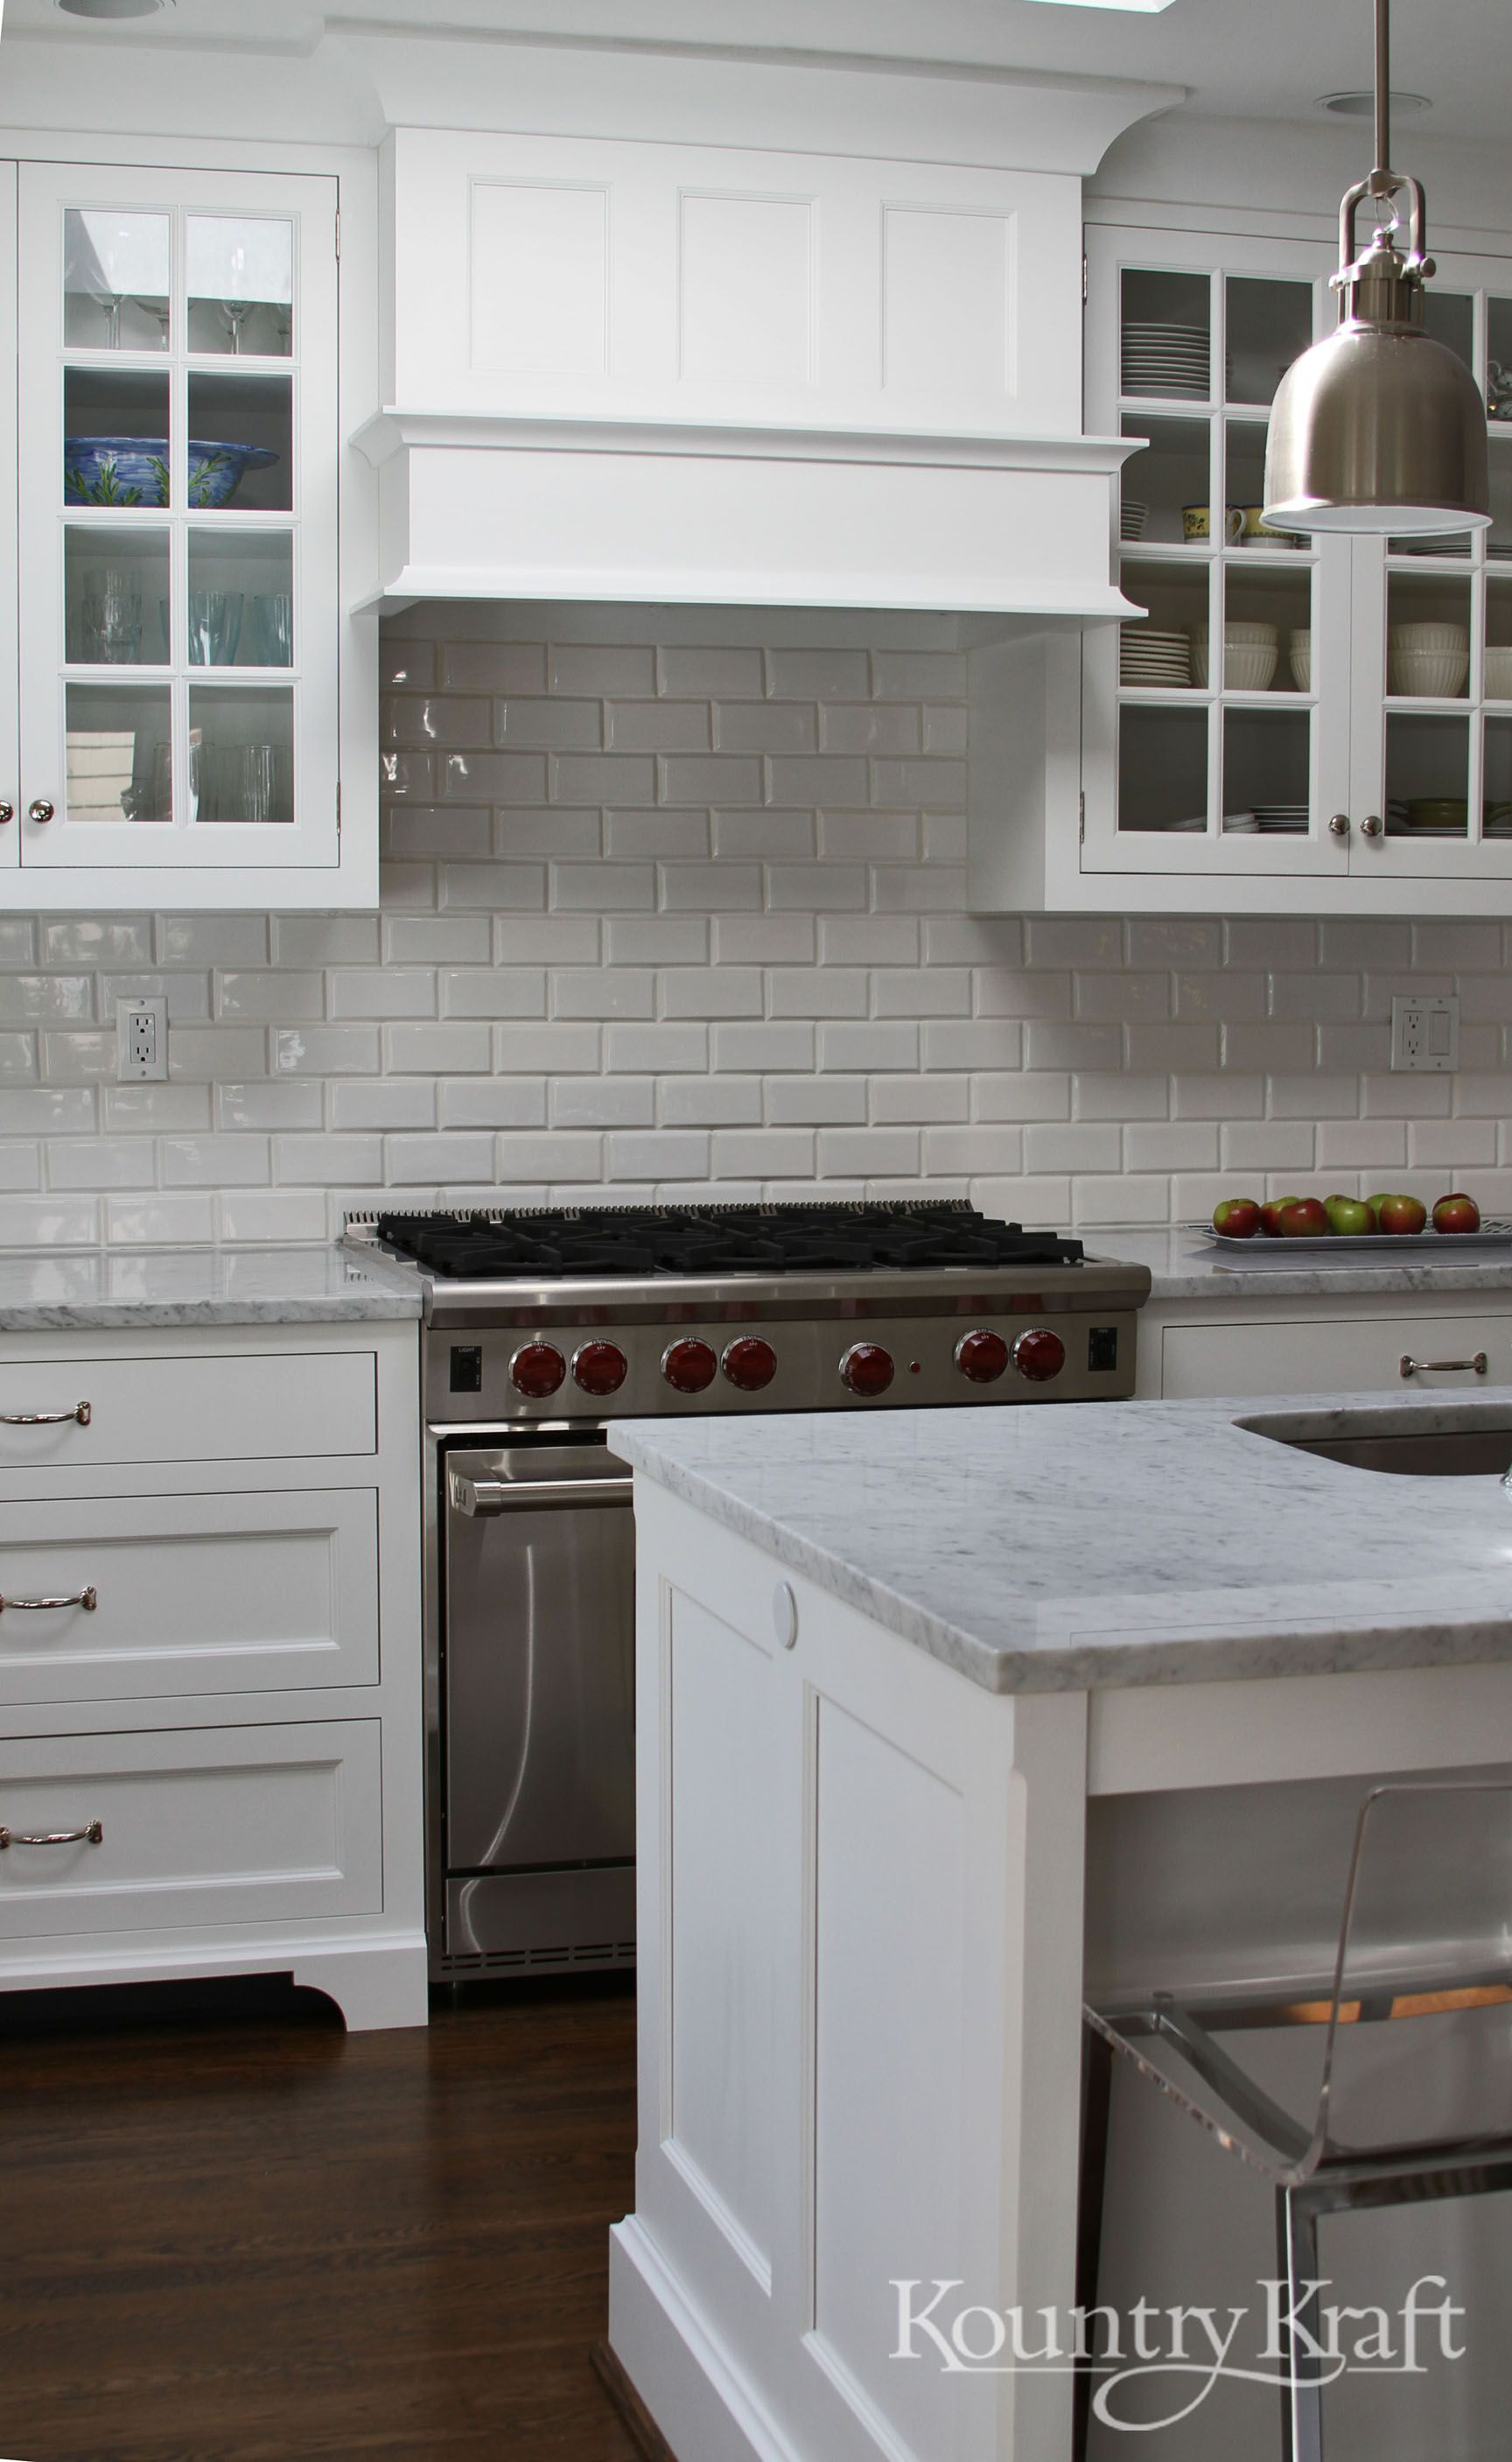 Custom Kitchen Cabinets Designed By Bradford Design LLC In Bethesda MD.  This Classic White Kitchens Includes Door Style TW10 With An OGEE Framing  Bead And ...